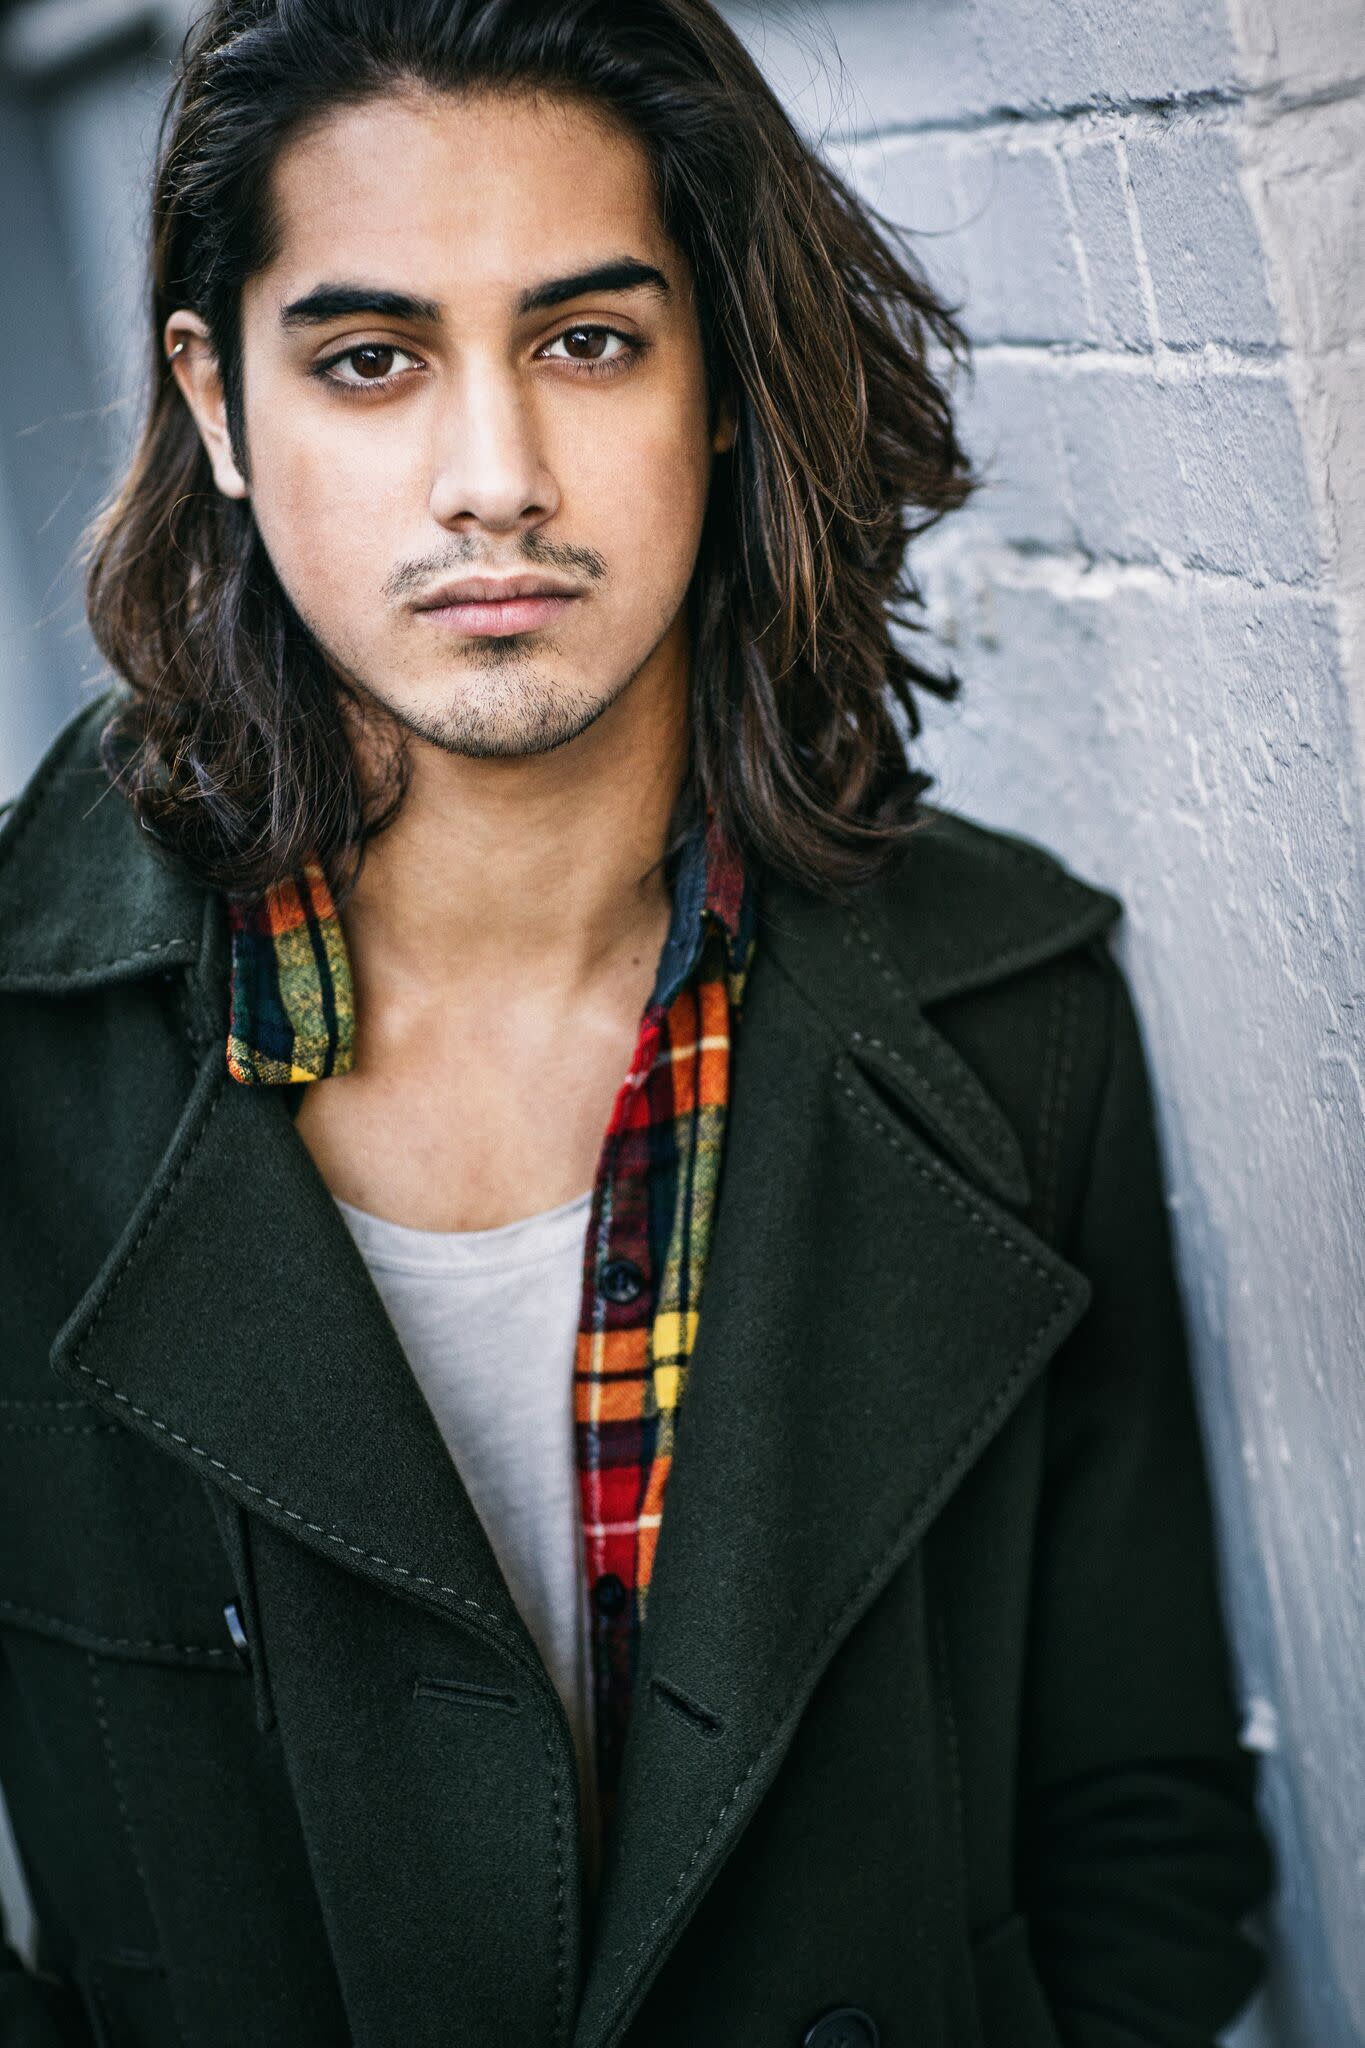 Who is avan jogia currently dating 2019